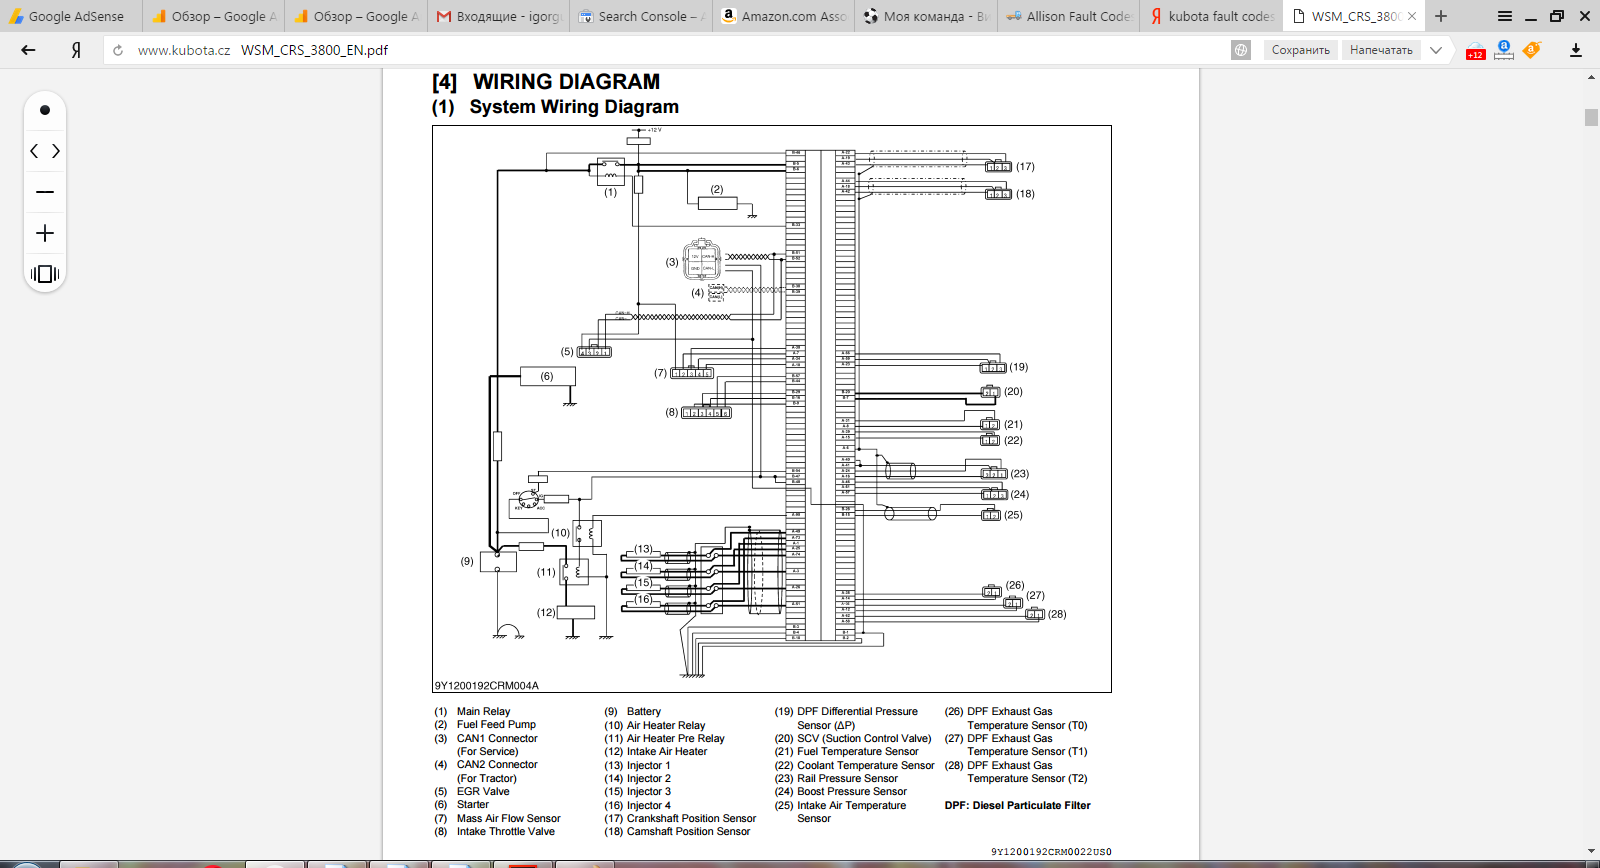 Kubota+V3600+Wiring+Diagram?t=1495350576 kubota tractor manuals pdf & wiring diagrams truck, tractor kubota wiring diagram pdf at crackthecode.co